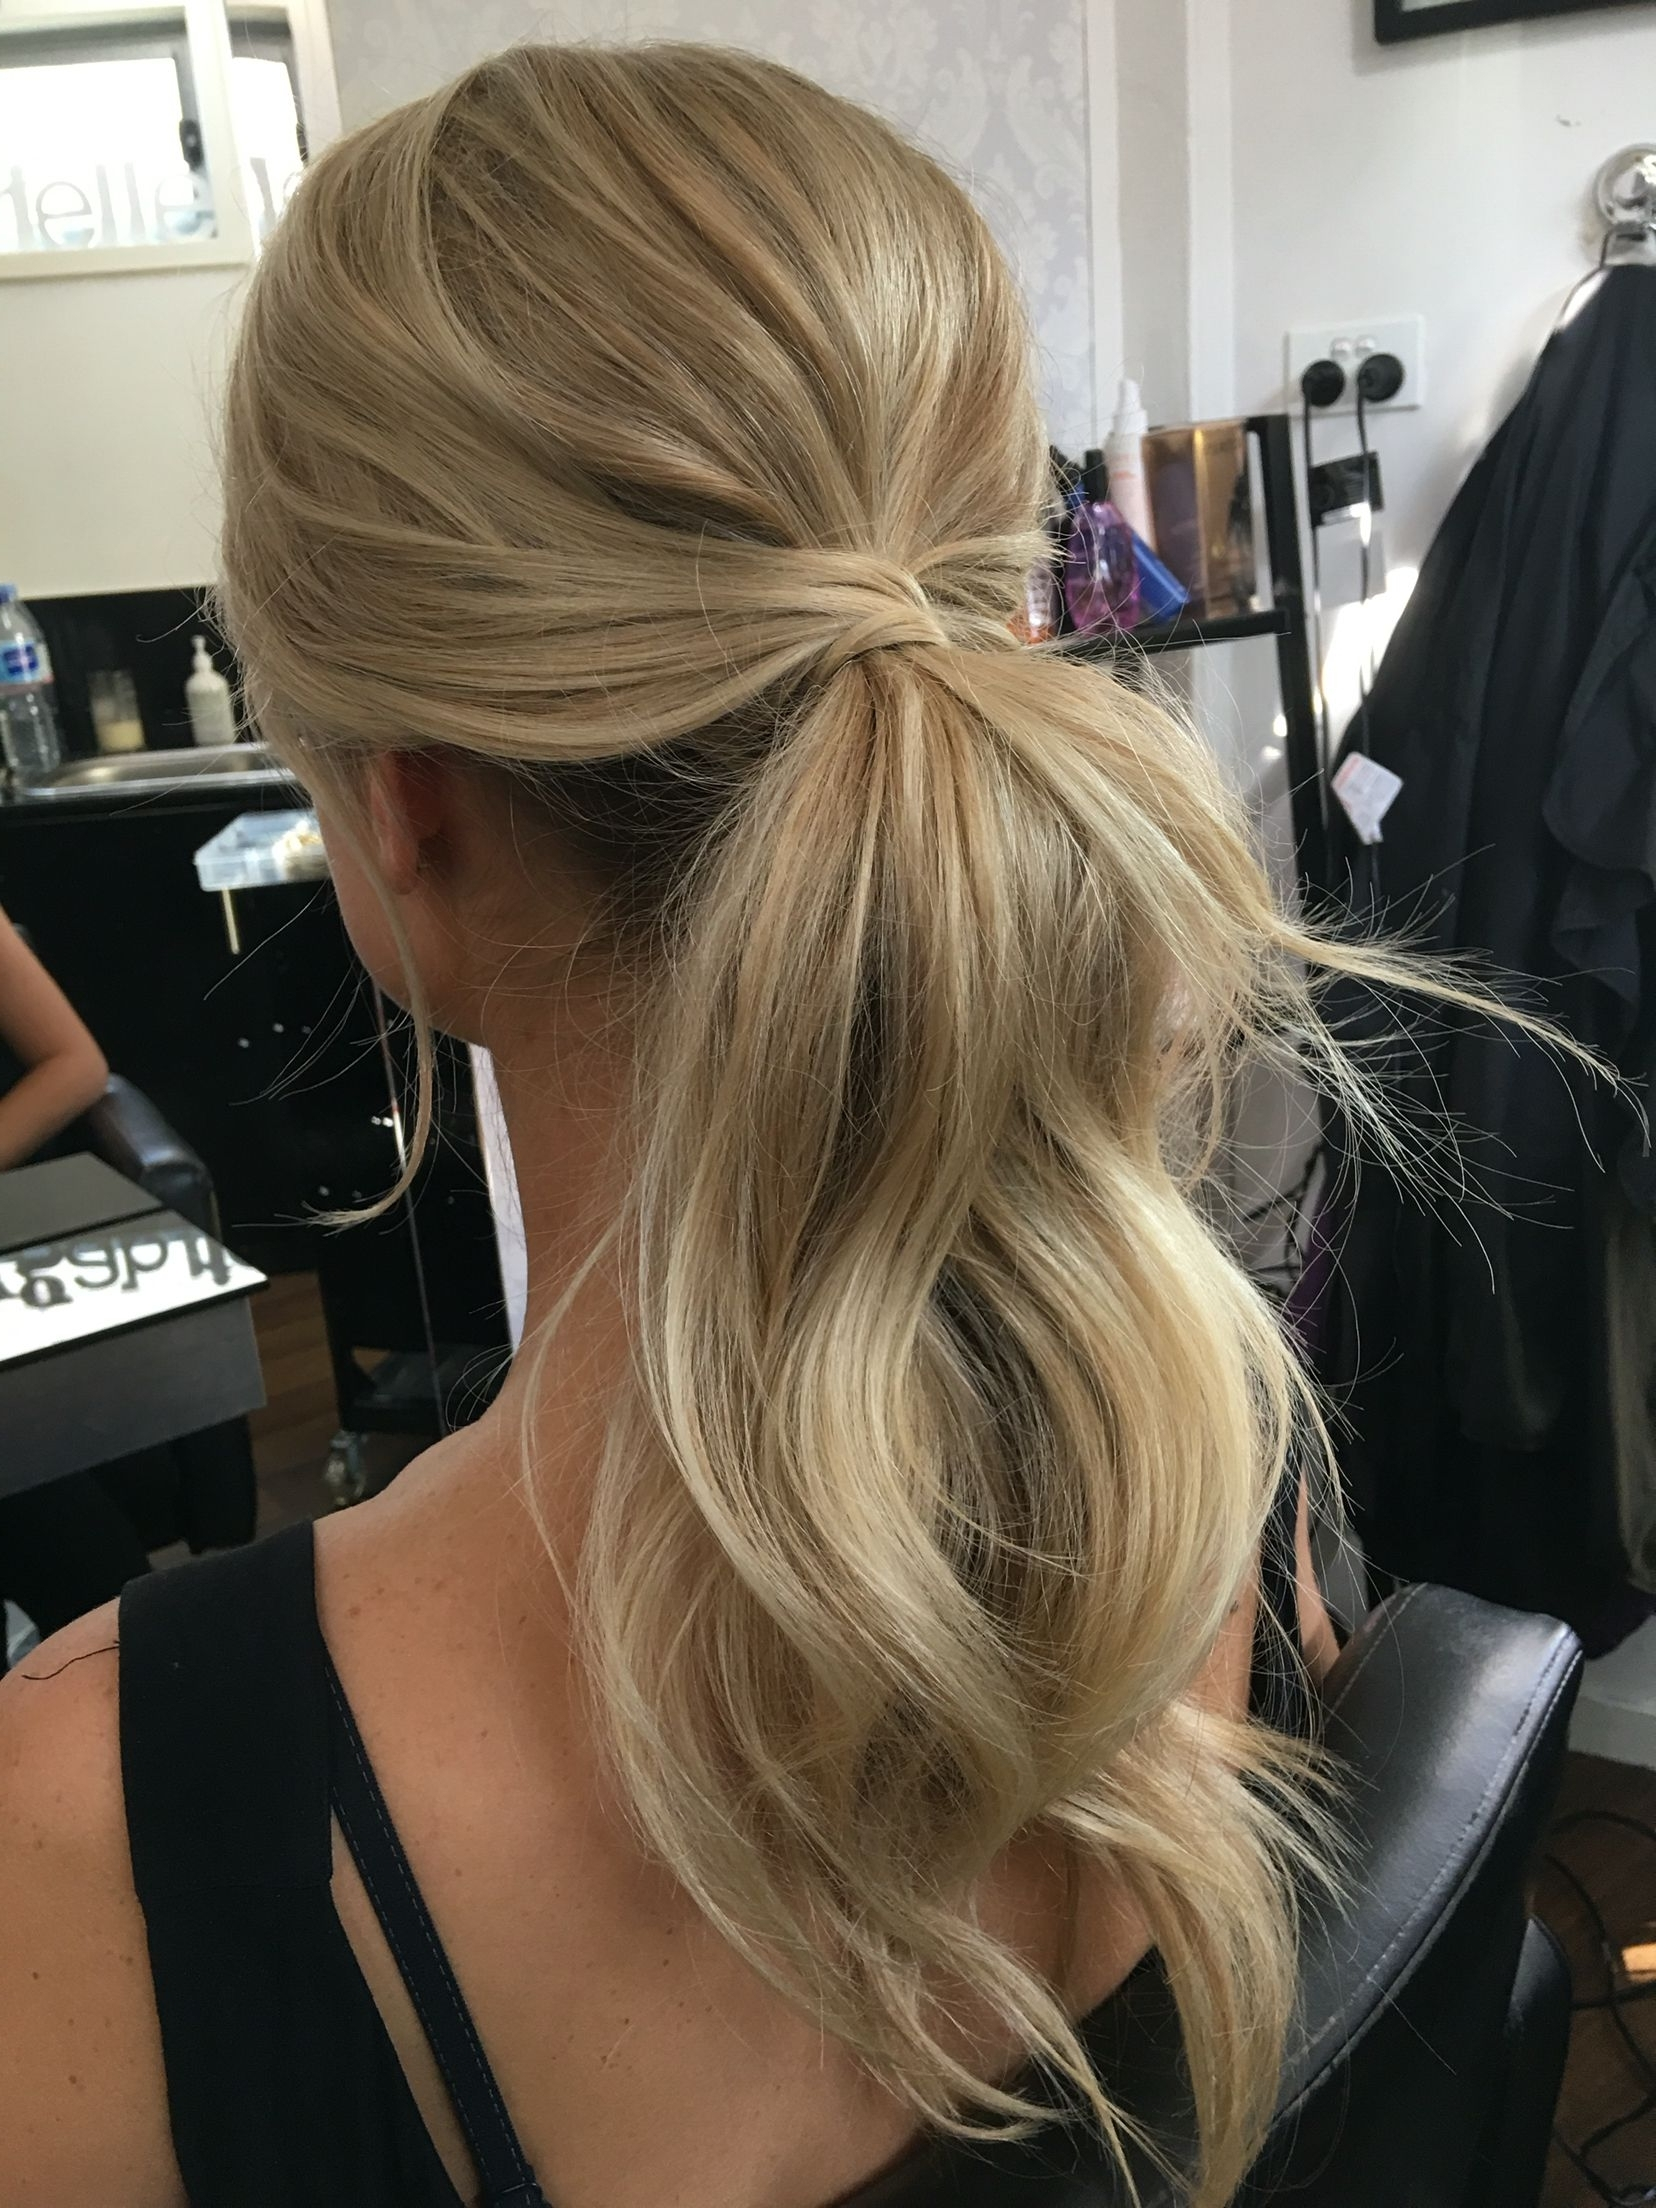 Hair, Hair Pertaining To Trendy Long Classic Ponytail Hairstyles (View 5 of 20)